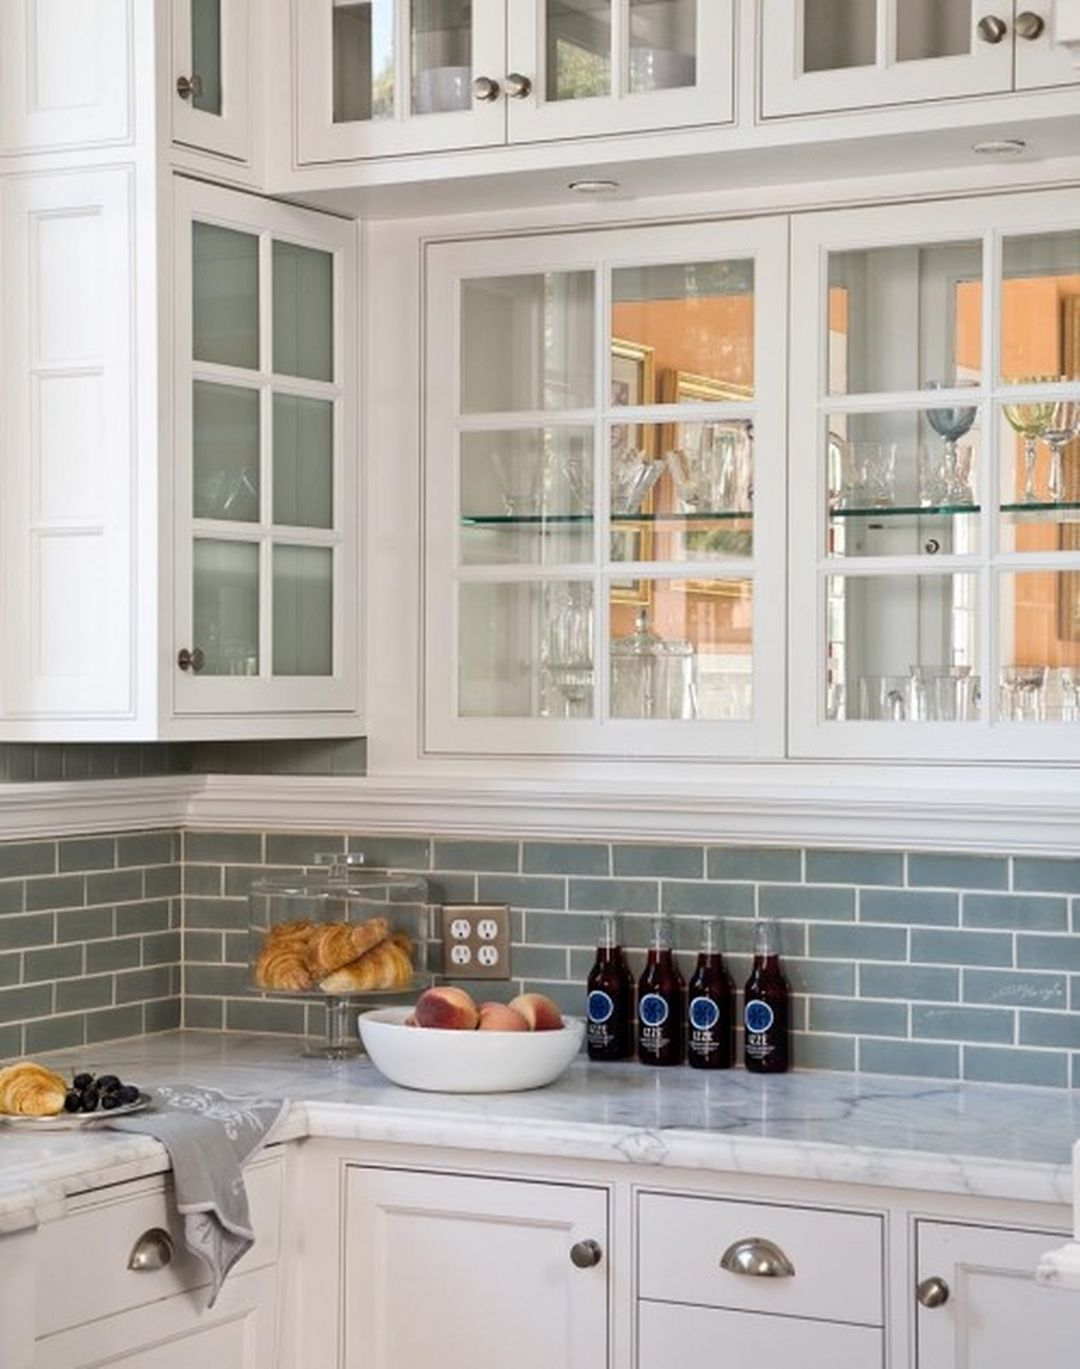 The best incredible glass backsplash tile for kitchen wall ideas